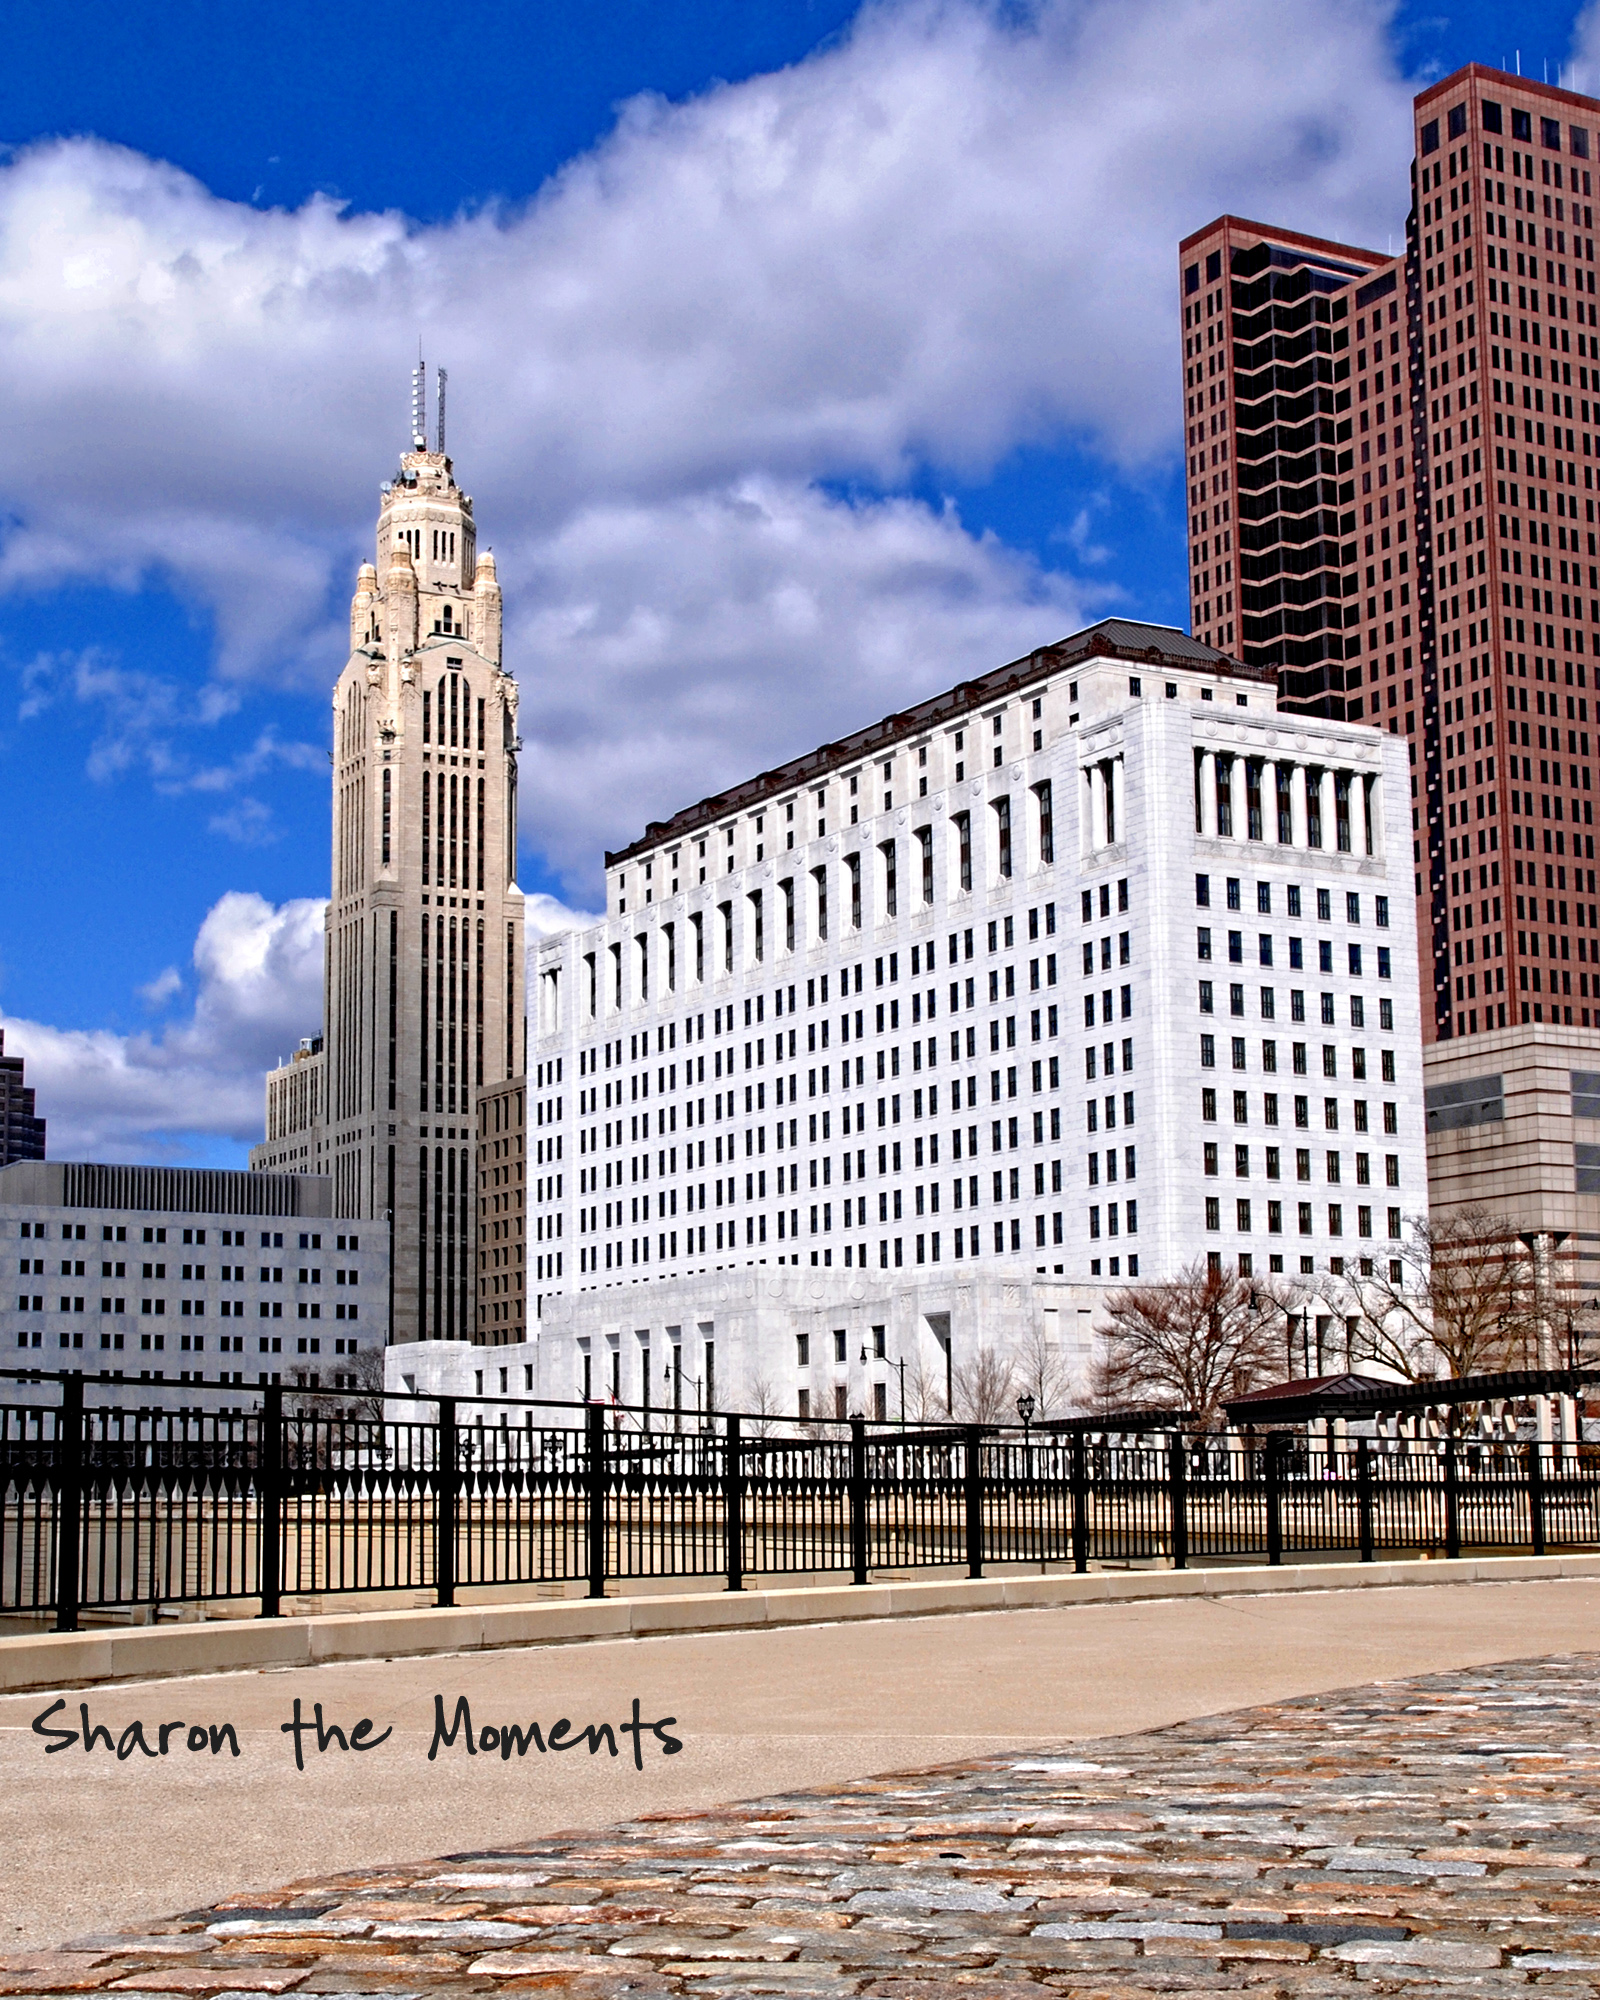 Monday Monday Spring Downtown Columbus Ohio Scioto Mile|Sharon the Moments blog